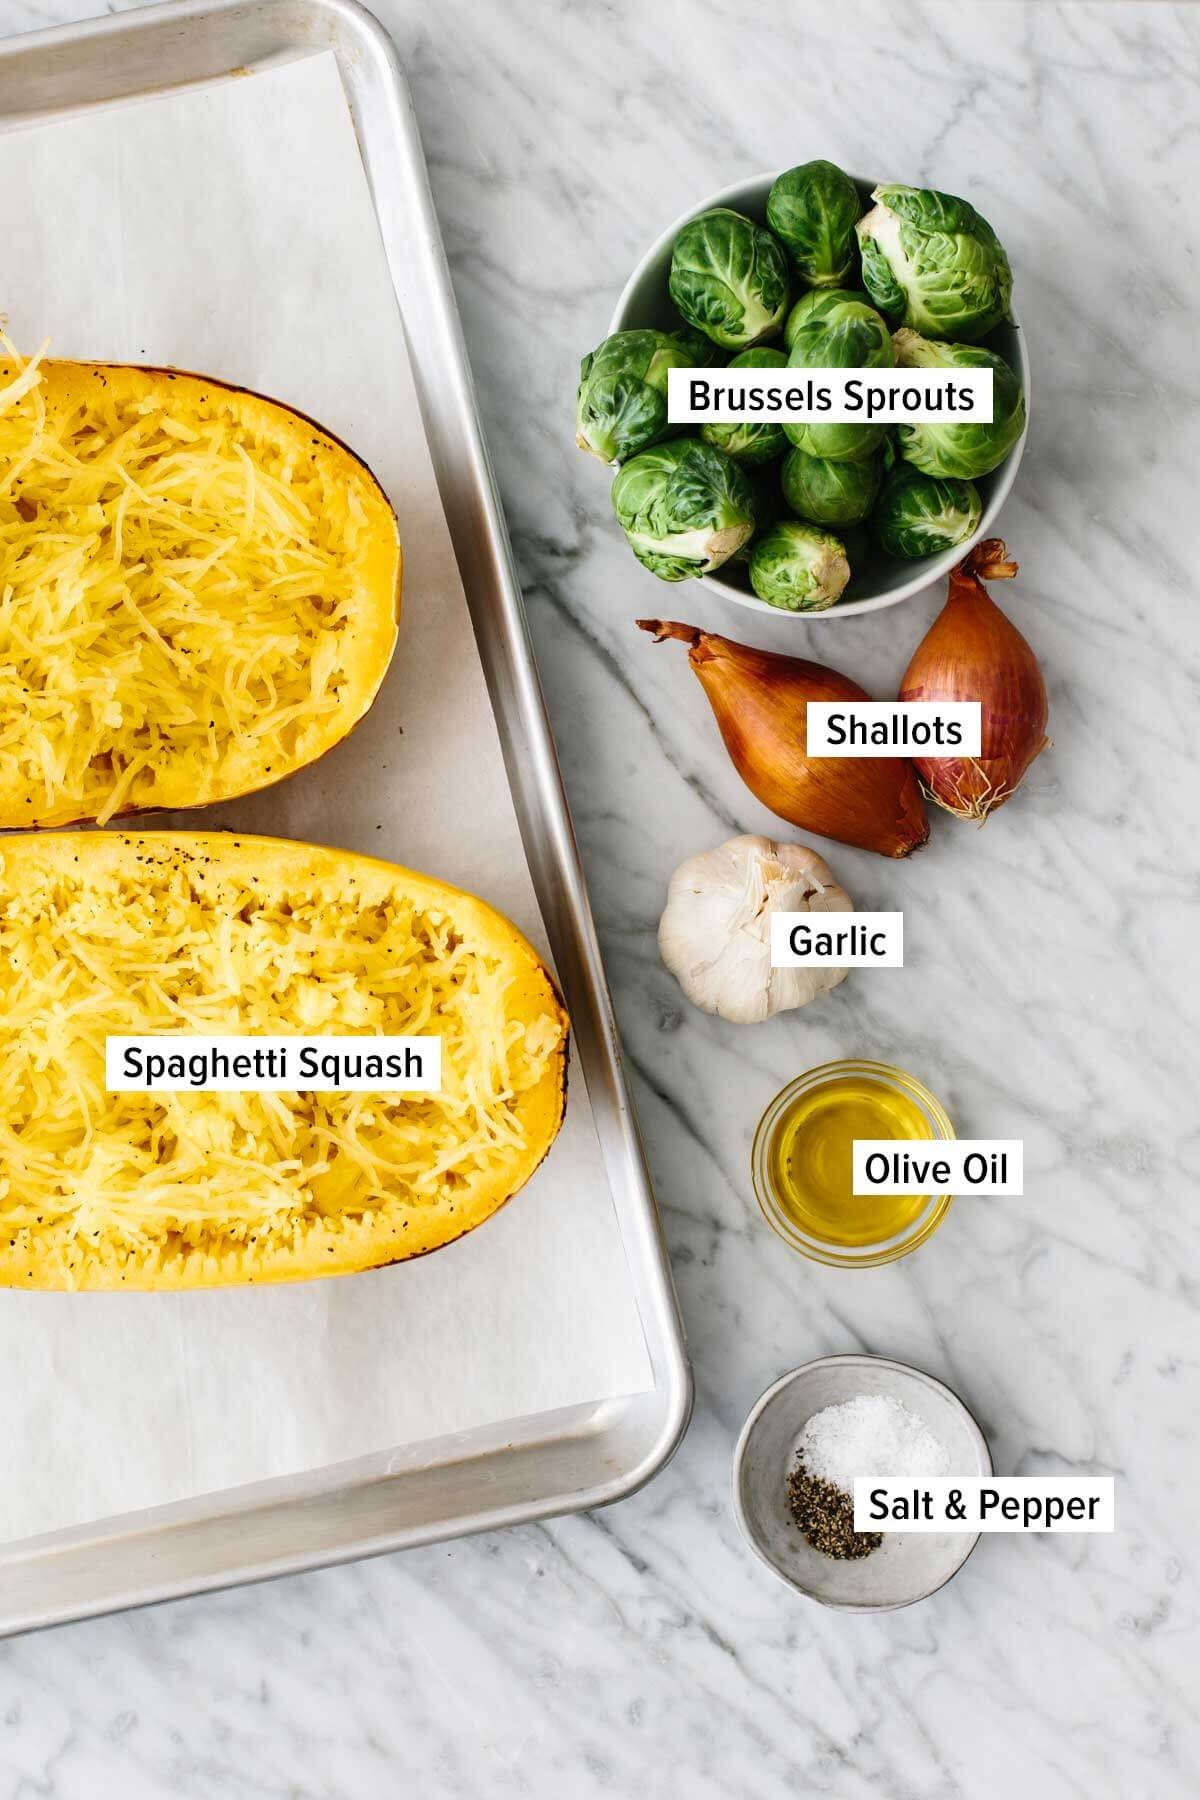 Ingredients for Spaghetti squash side dish on a table.